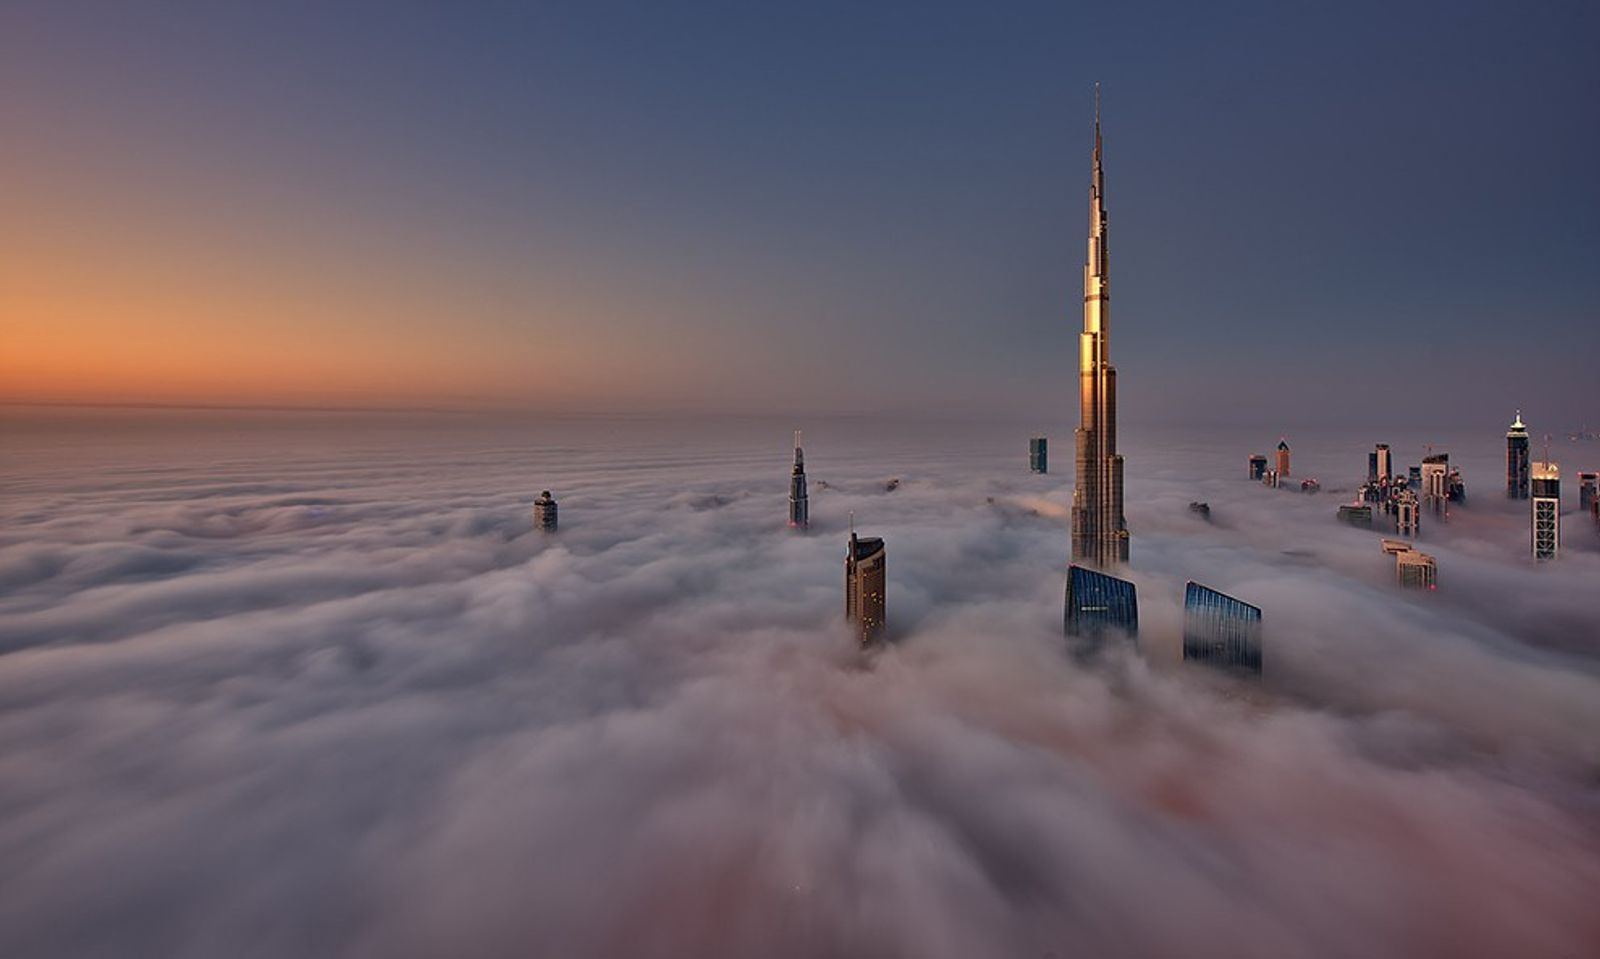 See stunning photos of spectacular architecture